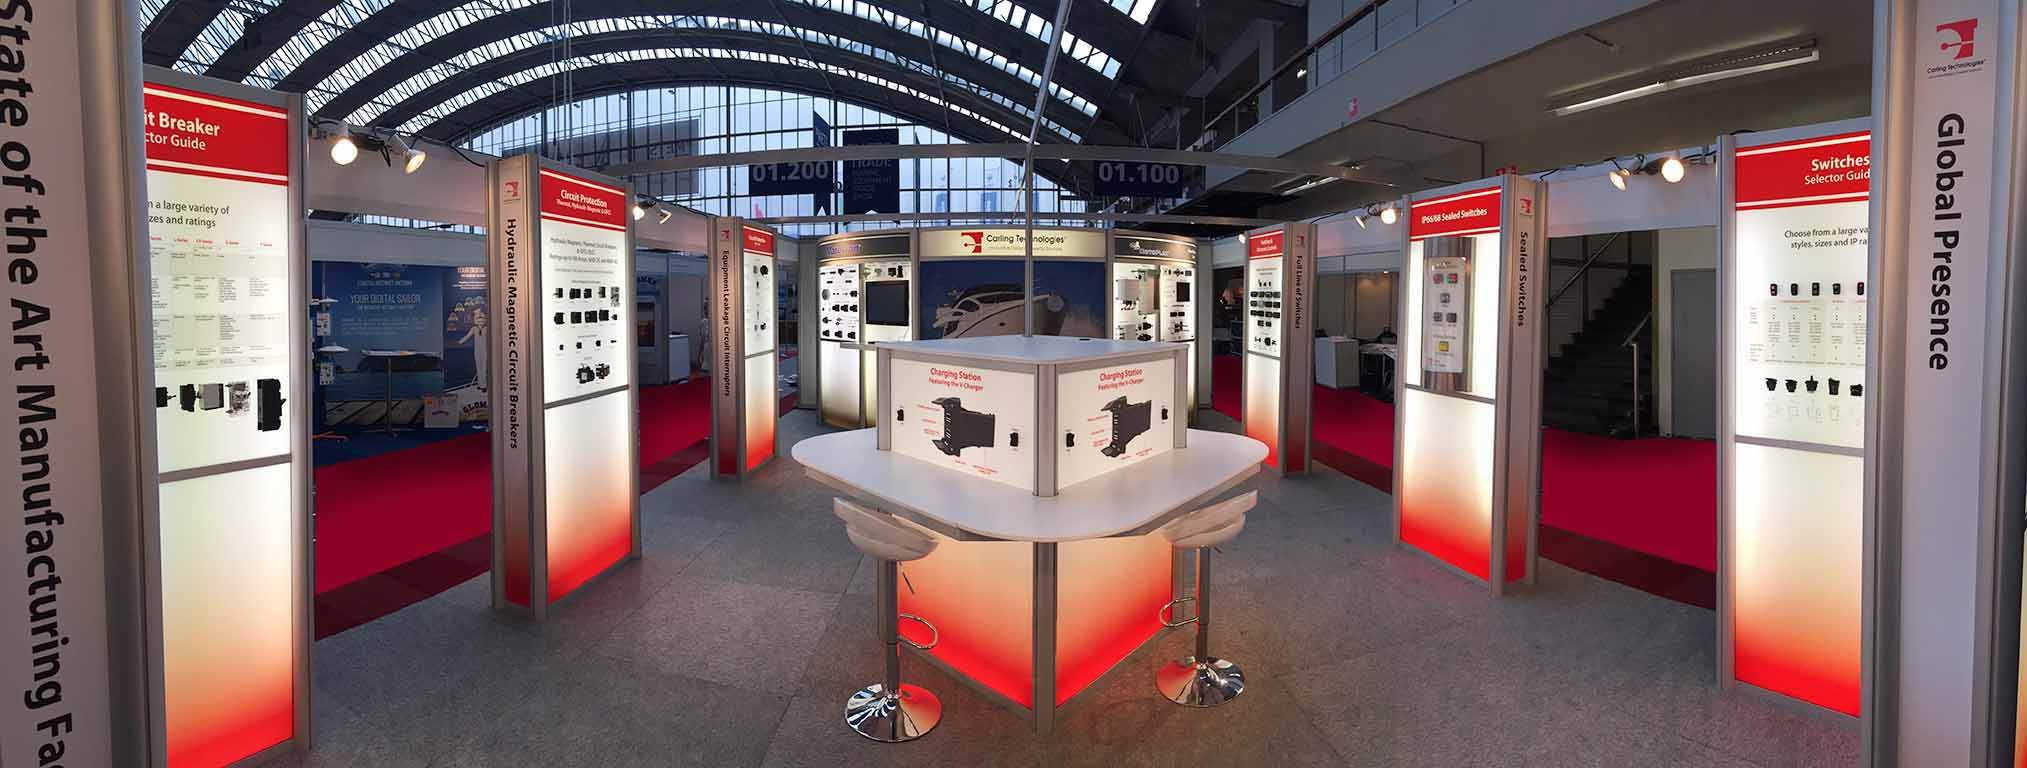 Carling modular stands exhibition